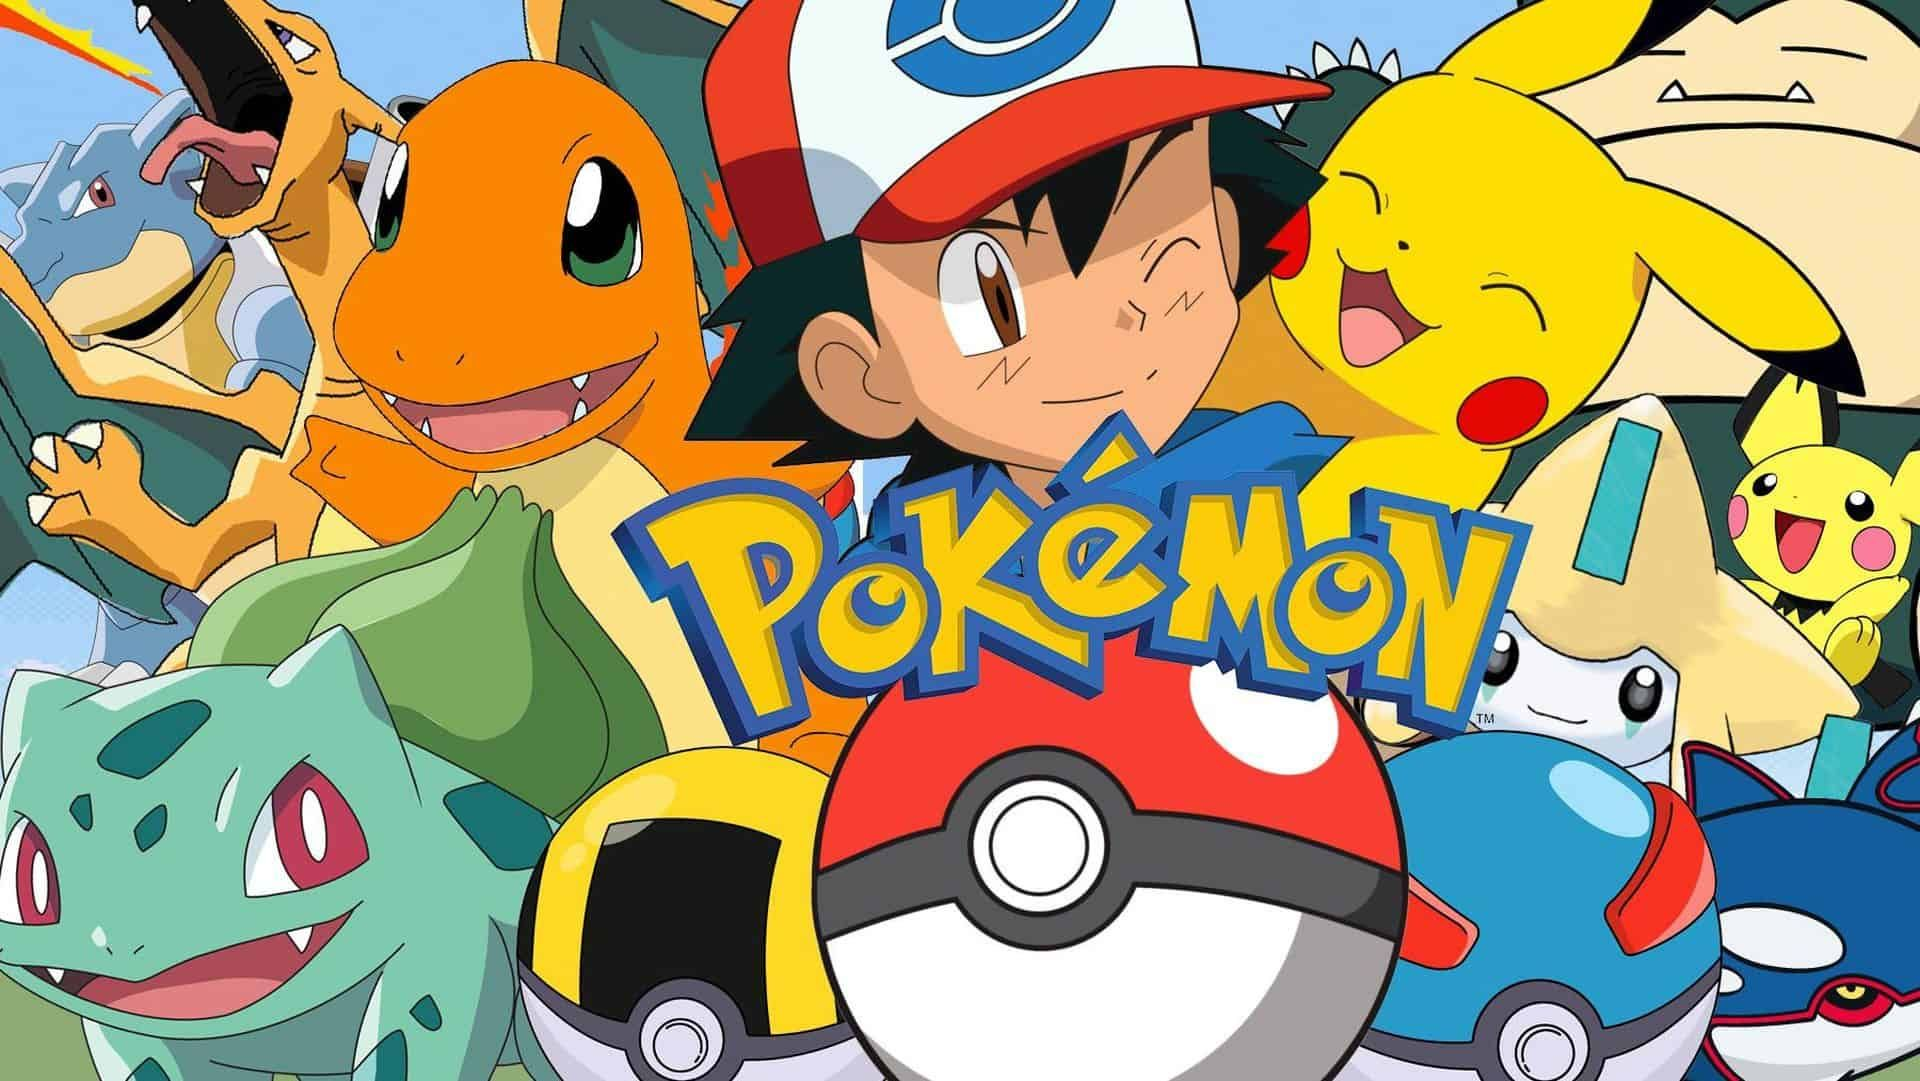 Pokemon Coloring Pages Pokemon Is One Of The Media Franchises Owned By Nintendo Video Game Companies Pokemon Pictures Pokemon Coloring Pokemon Coloring Pages